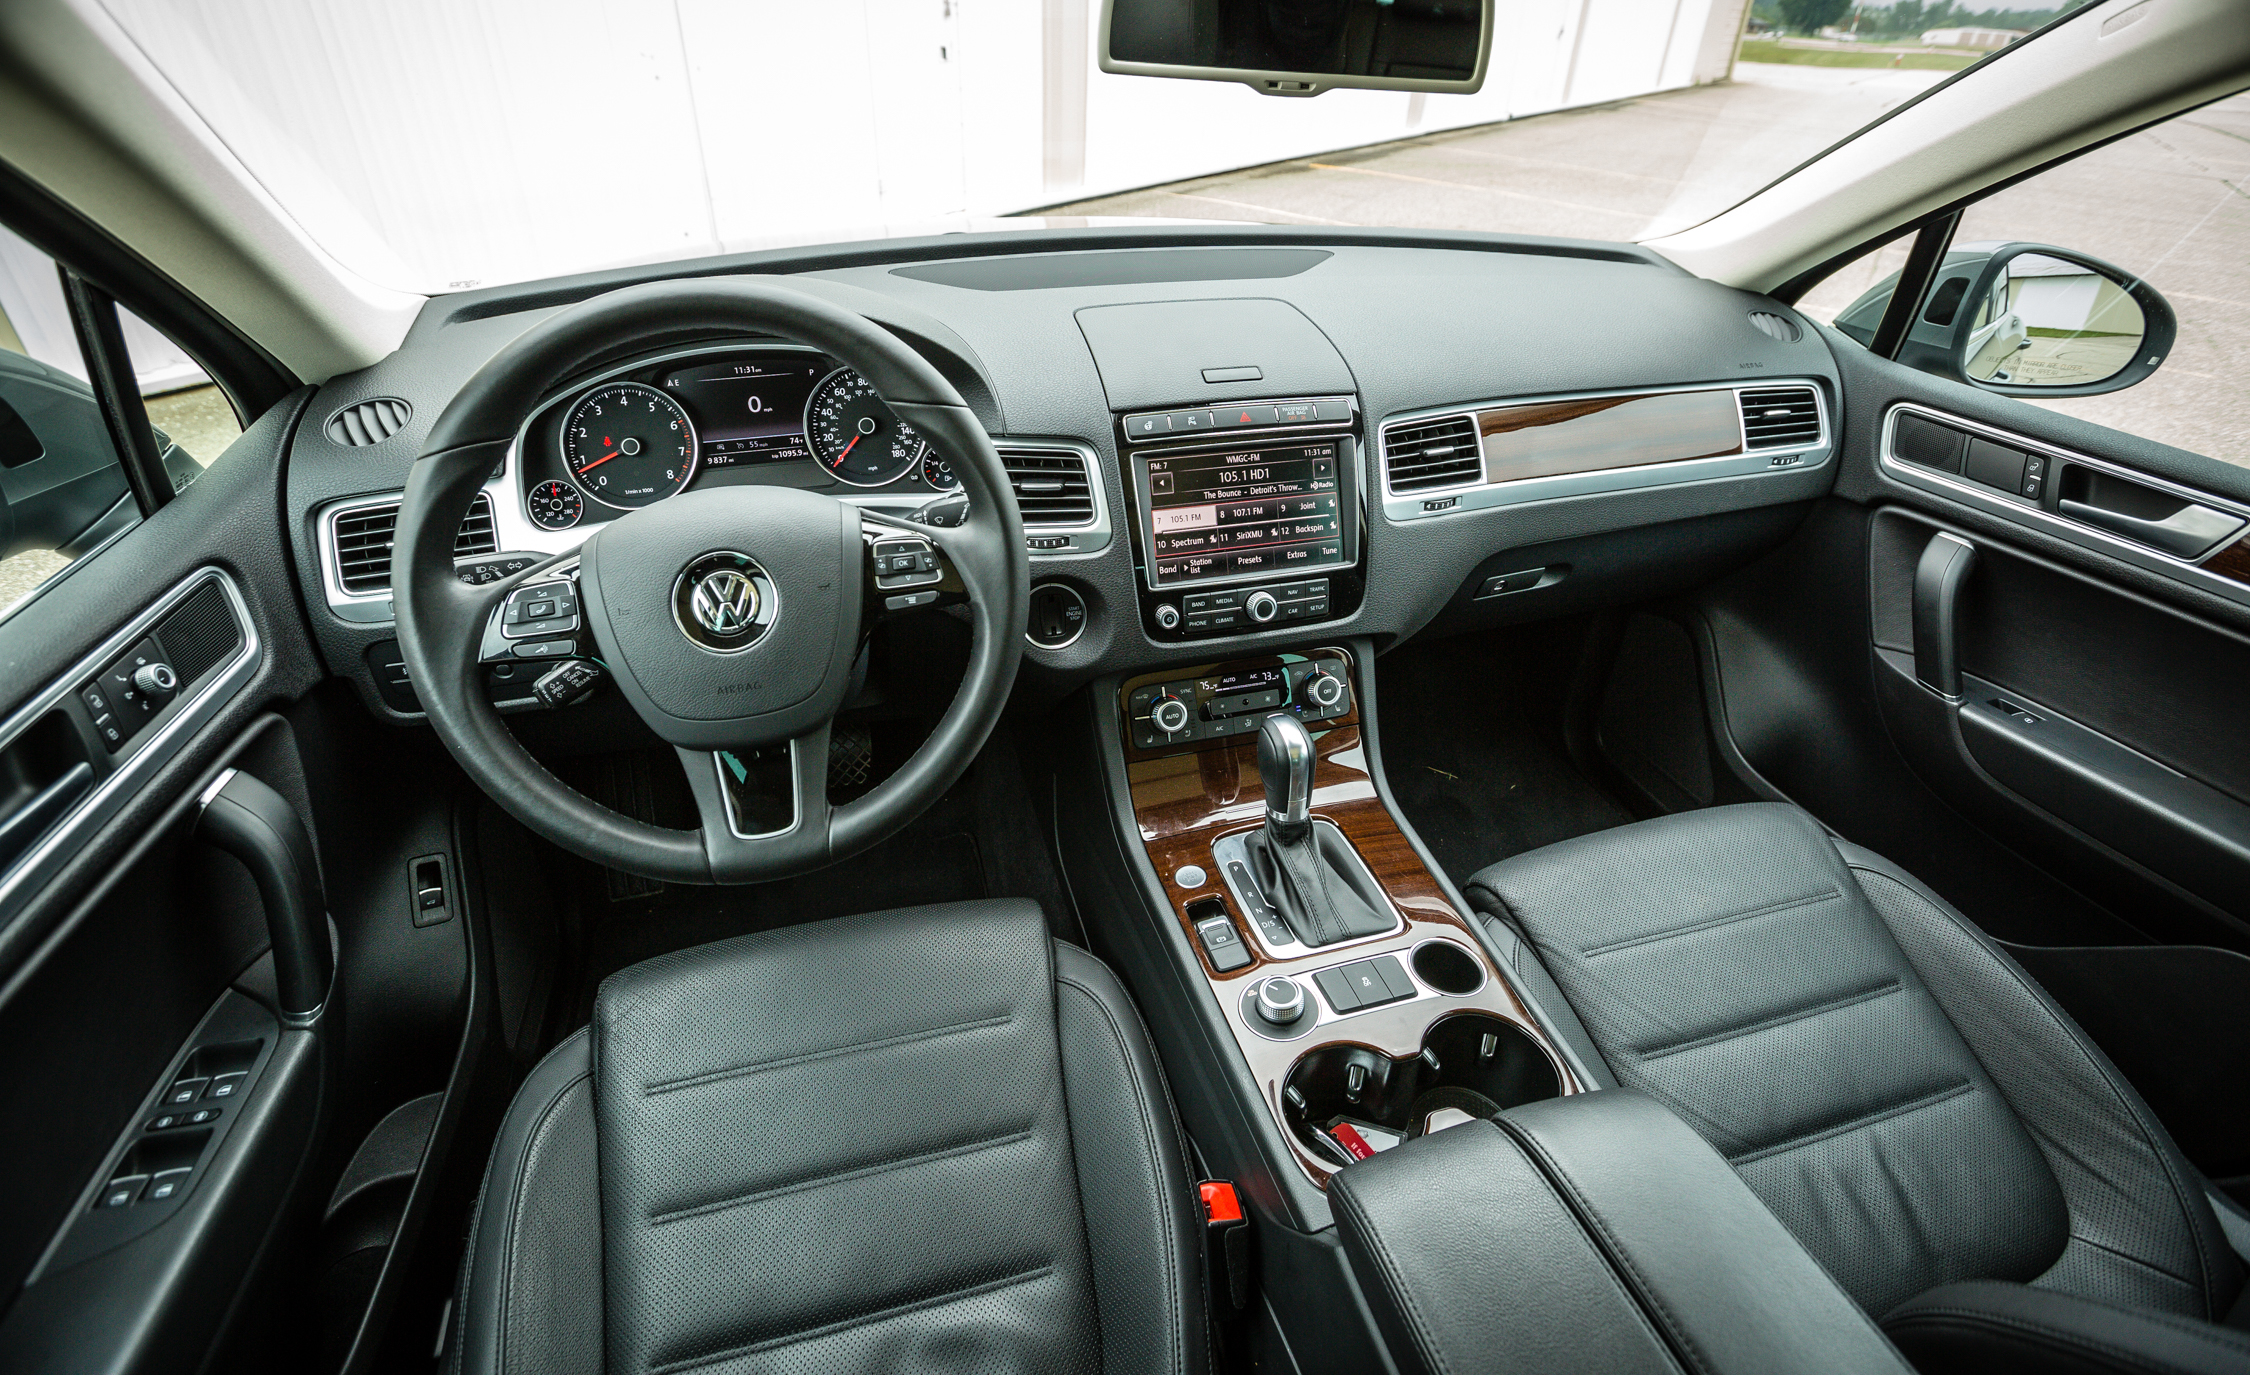 2016 Volkswagen Touareg Interior Dashboard (View 12 of 16)